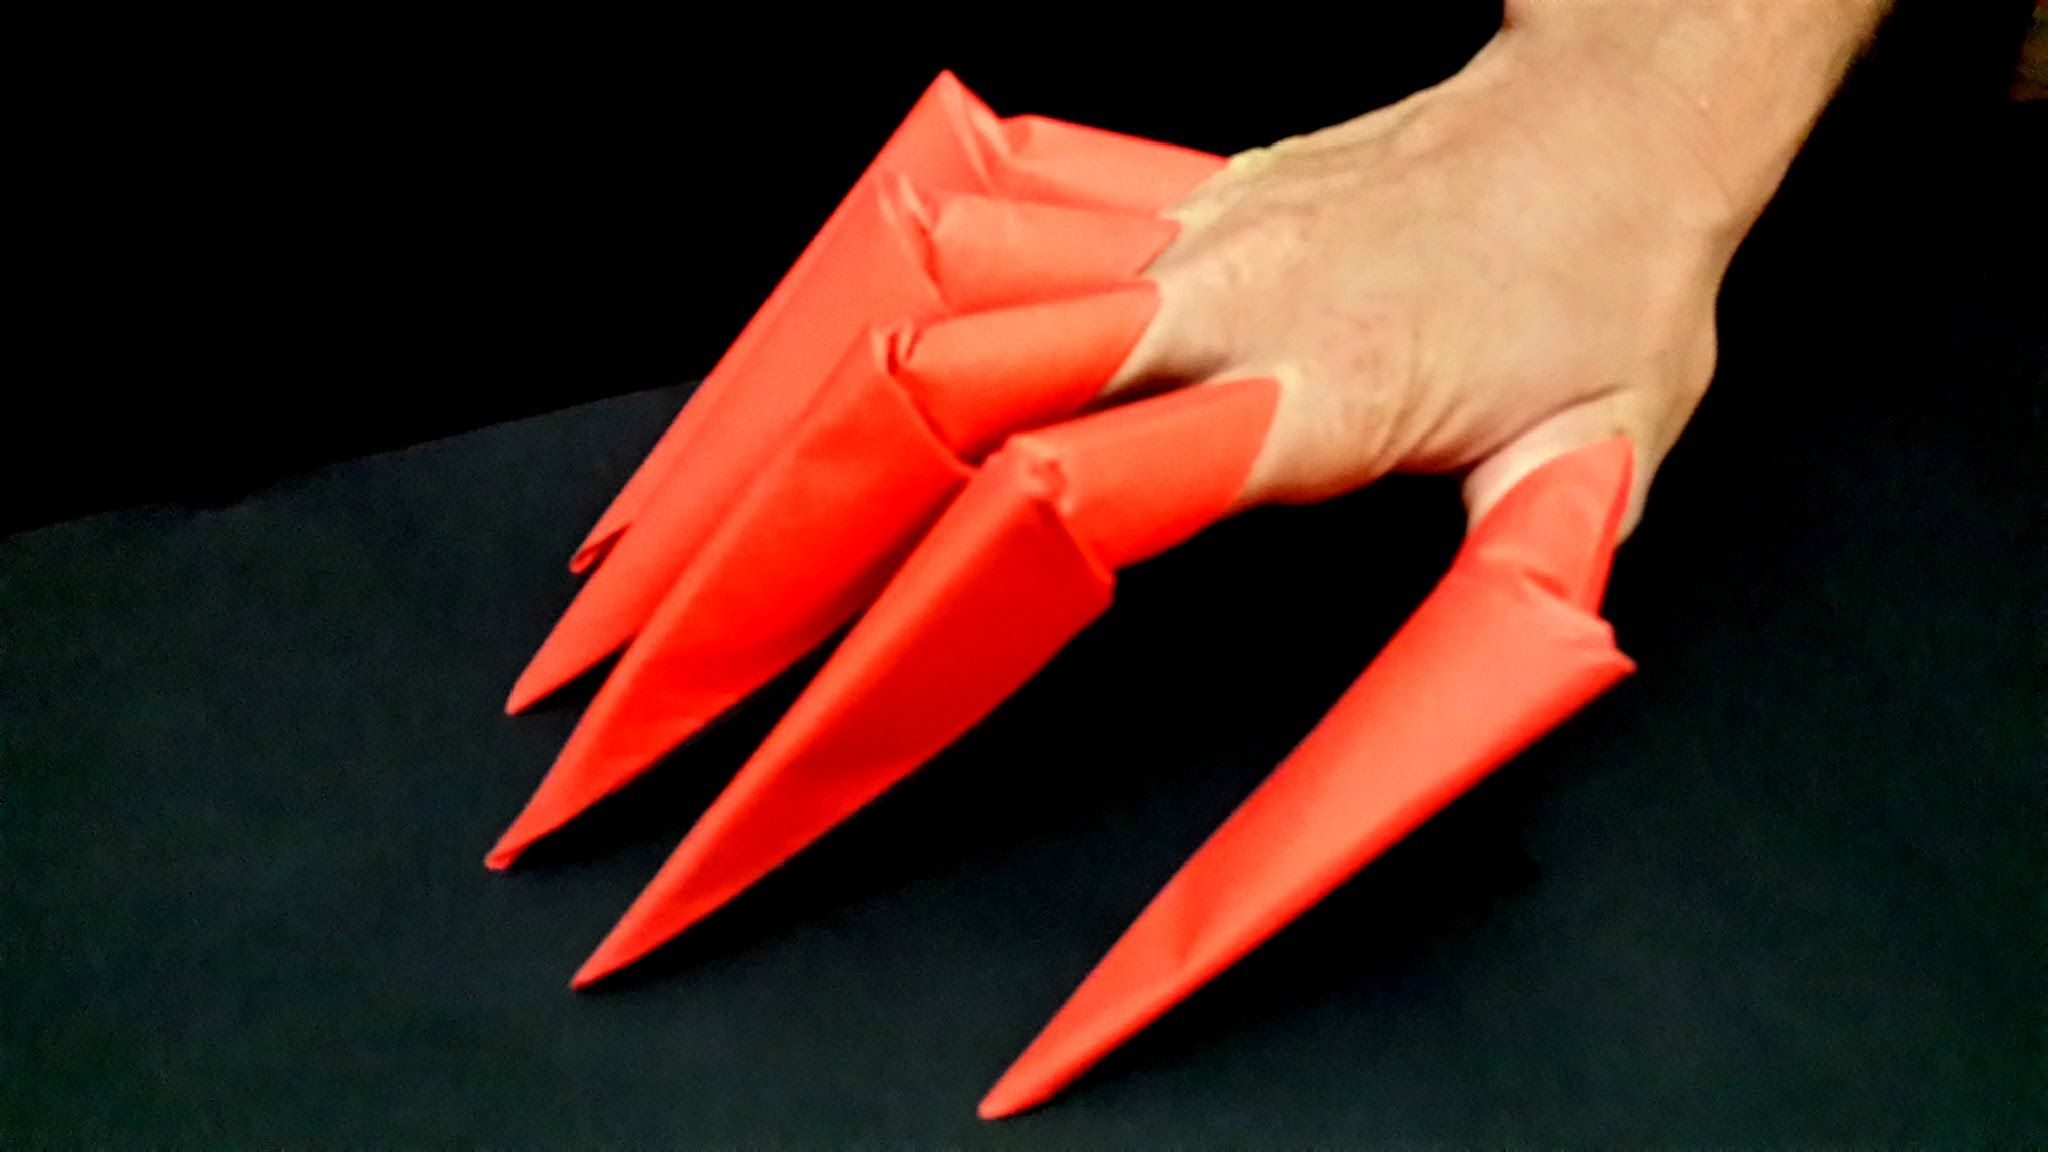 How to make origami claws | Origami claws, How to make origami ... | 1152x2048